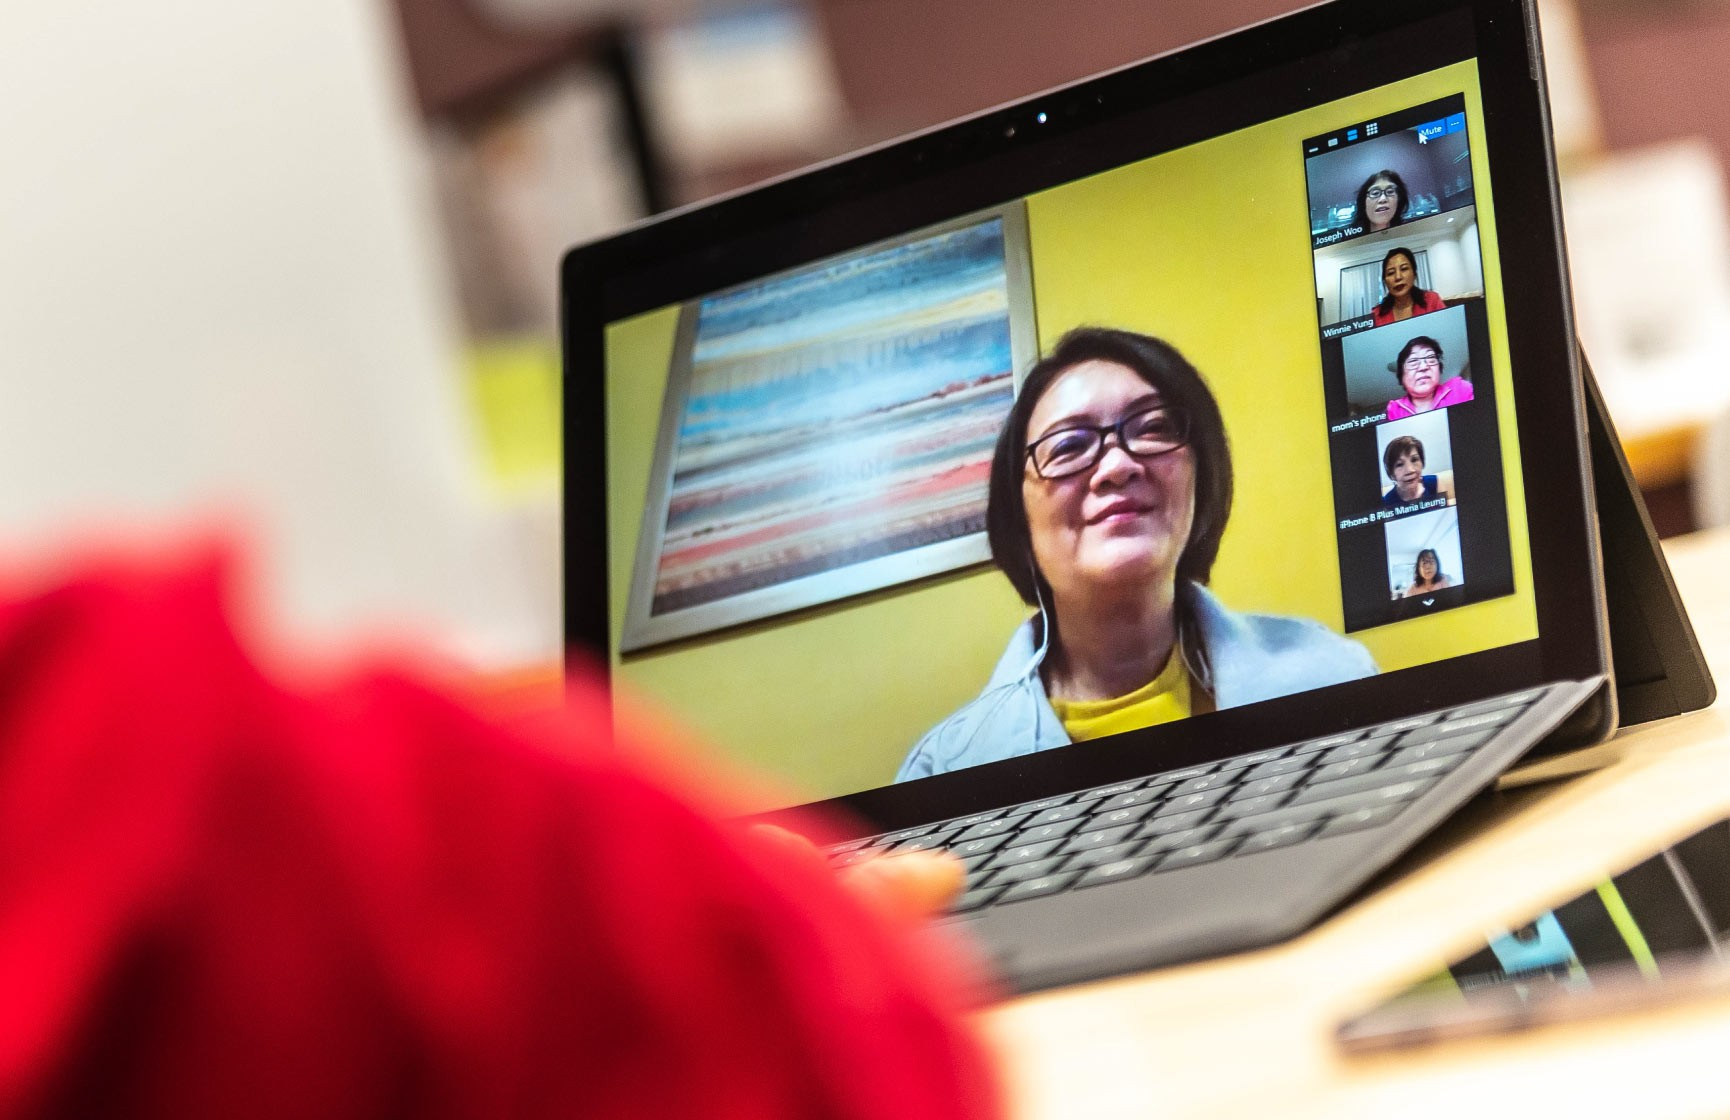 A laptop screen shows a video conference conversation between several seniors